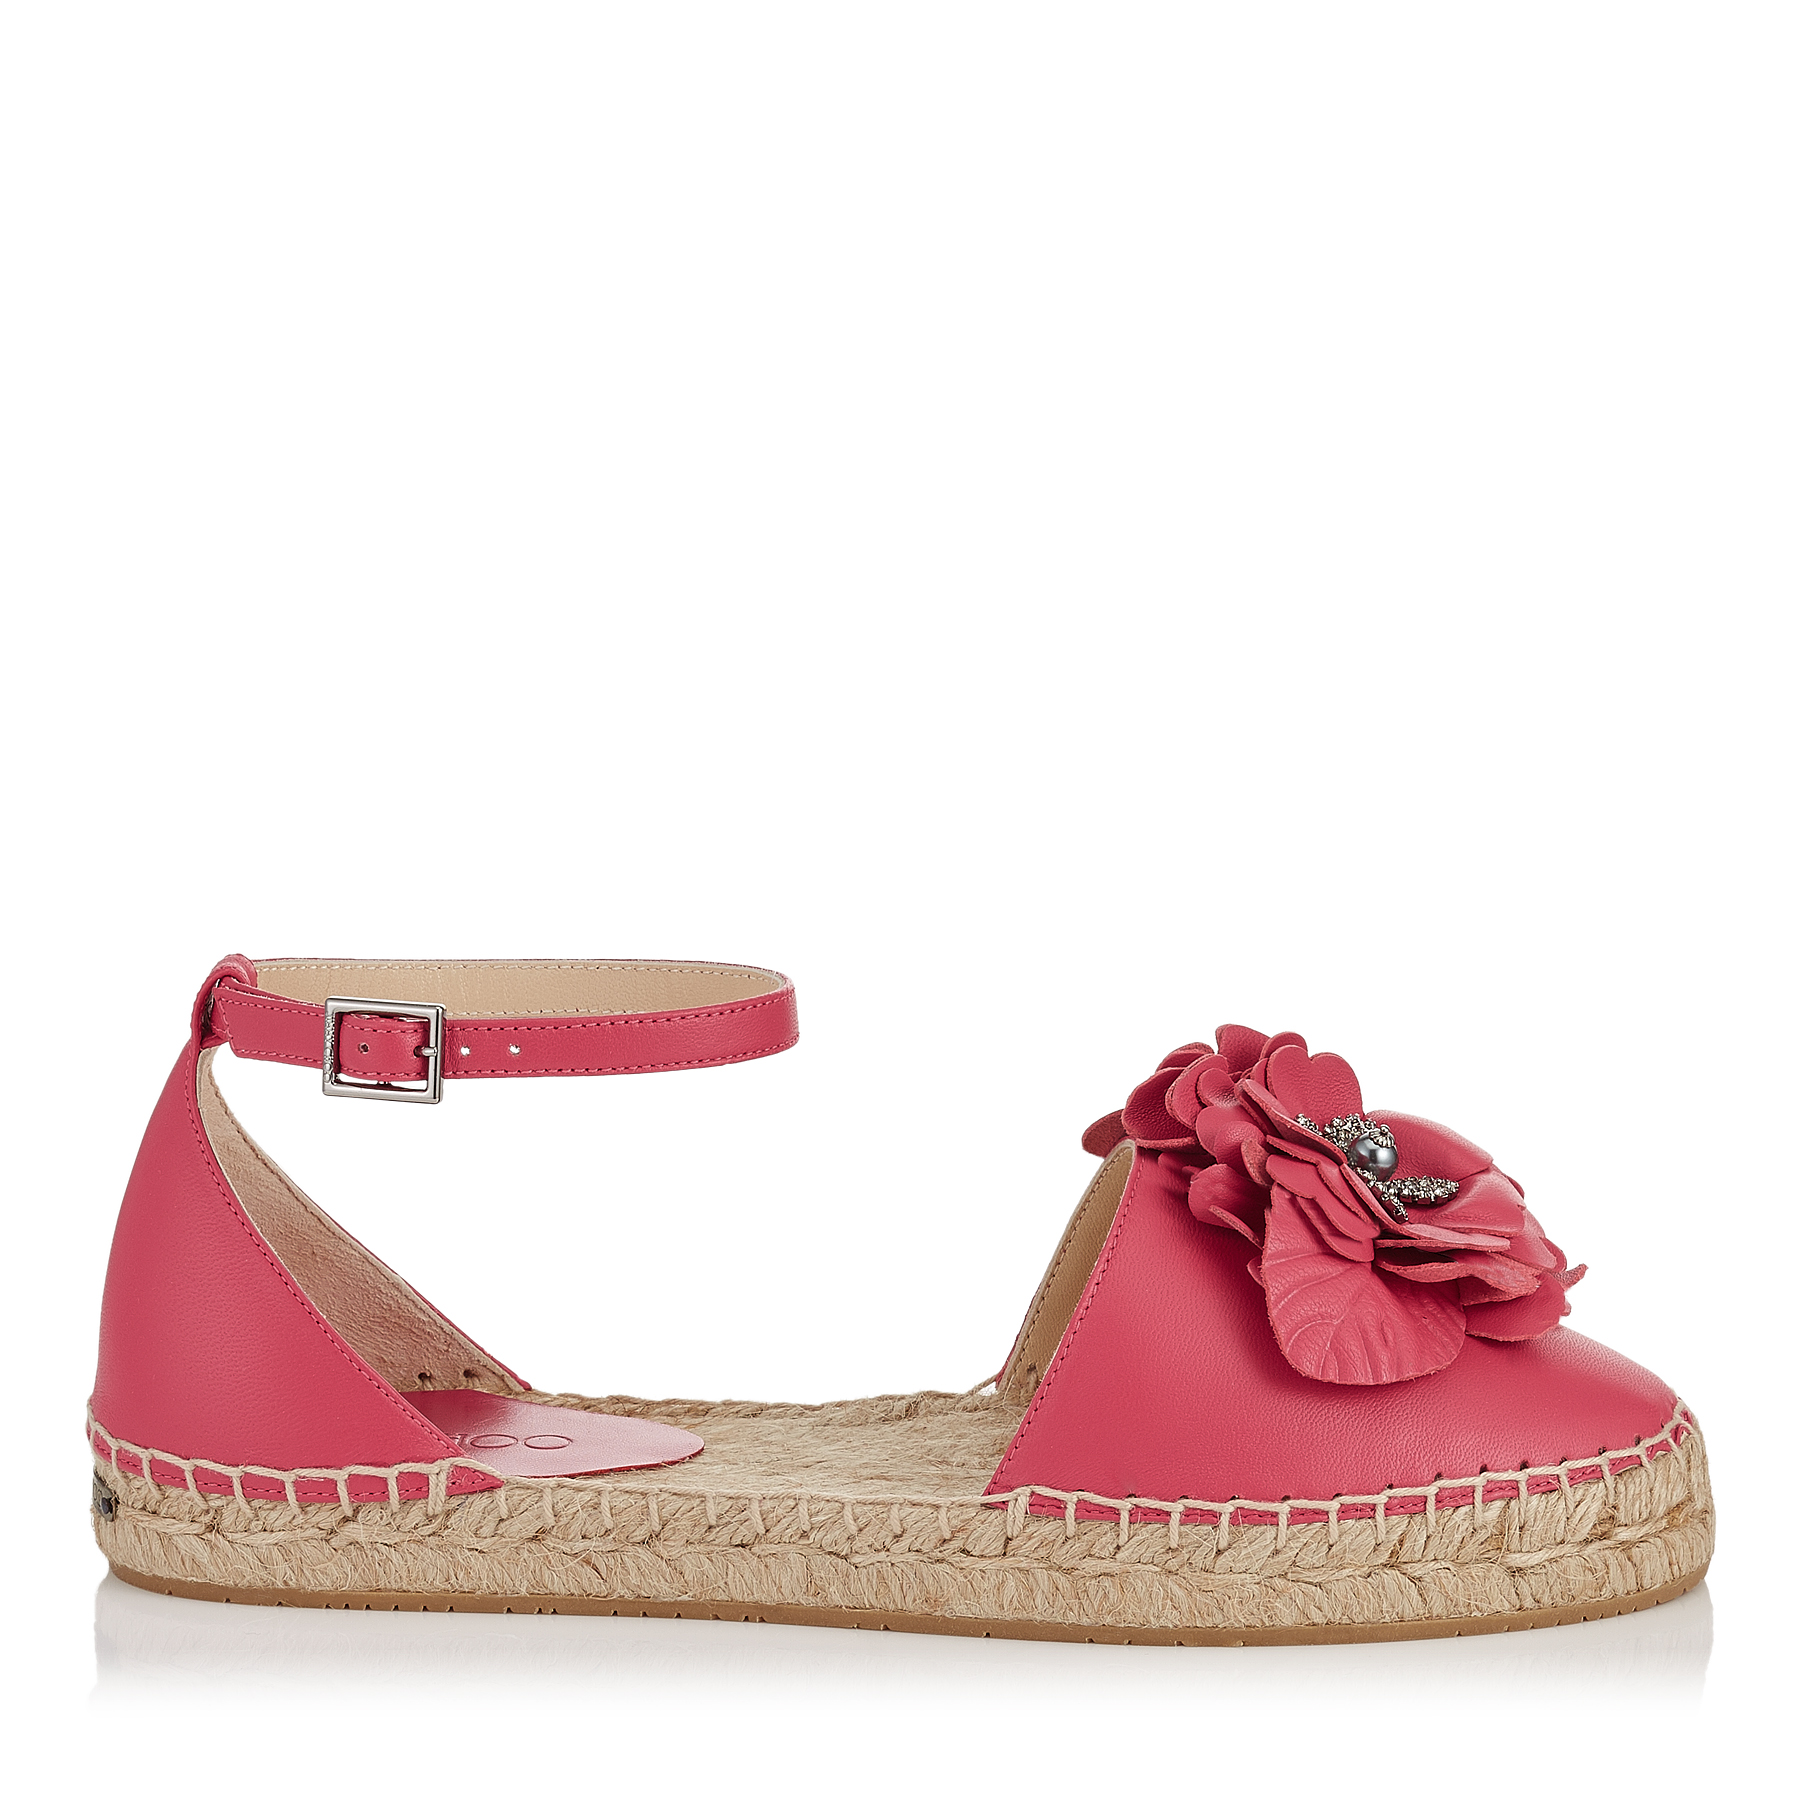 DYLAN FLAT Dahlia Pink Nappa Leather Espadrilles with Floral Applique